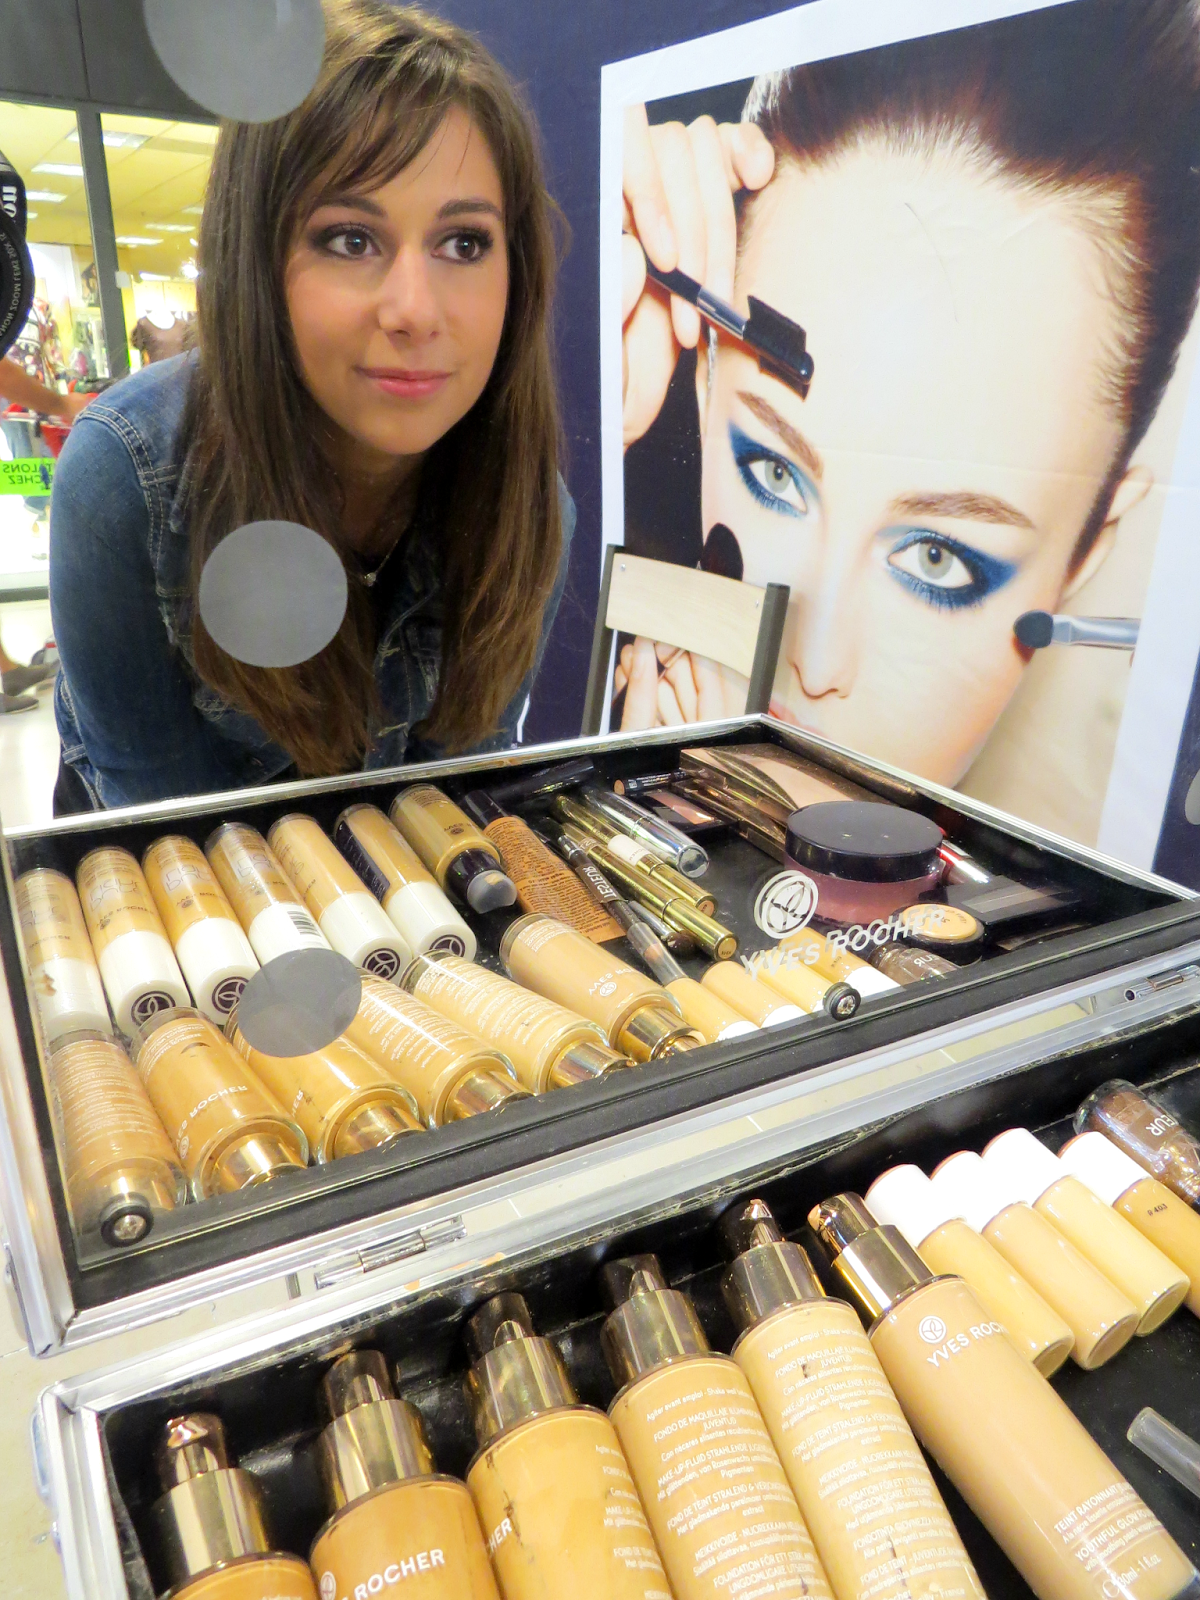 Les Make-up Days de Yves Rocher du 22 Septembre au 12 Octobre 2014 !